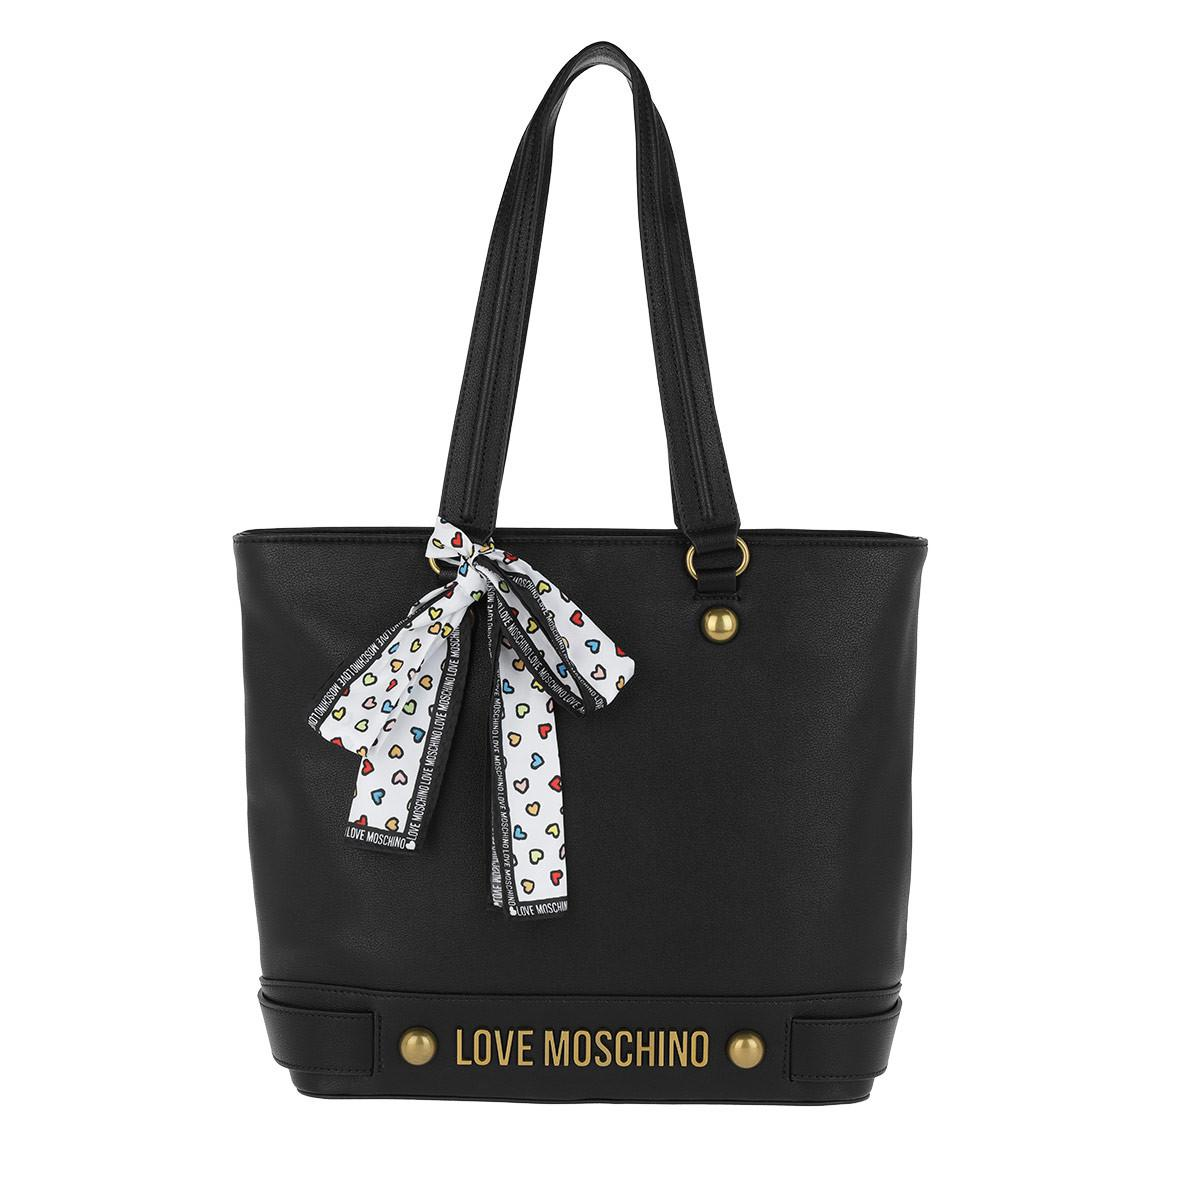 fd5686cef175 Love Moschino Nappa Grain Shopping Bag Scarf Nero in Black - Lyst